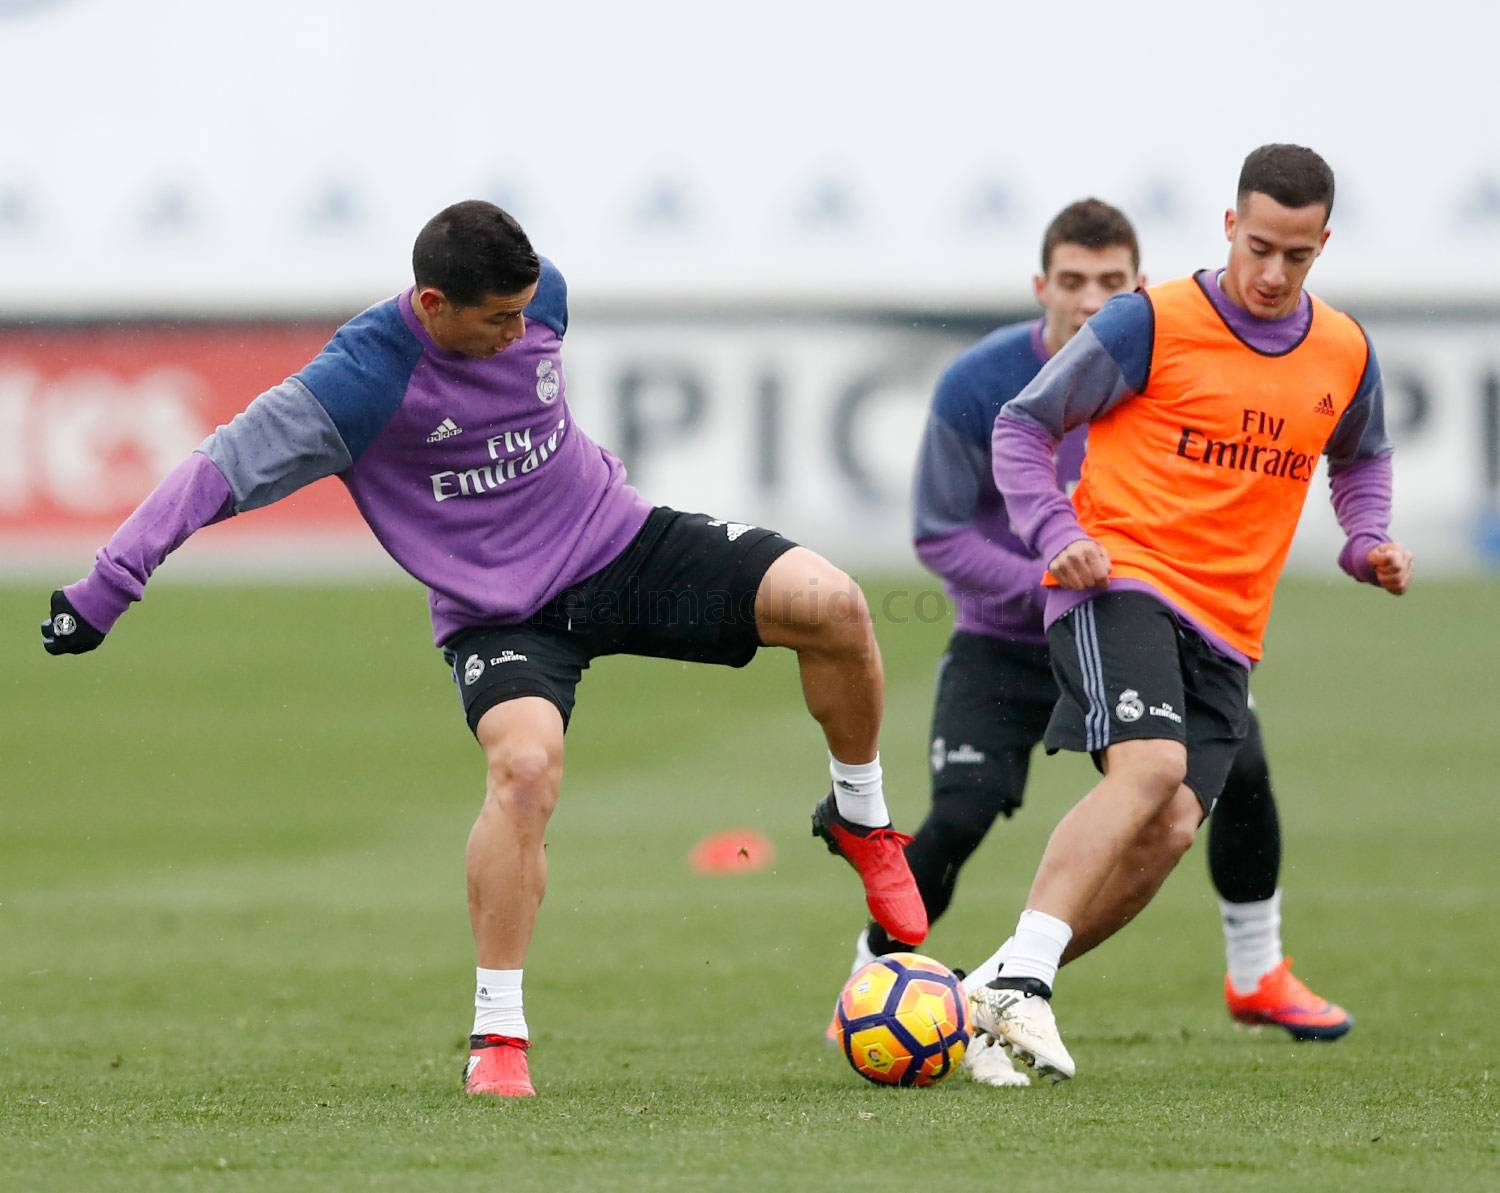 Real Madrid - Entrenamiento del Real Madrid - 25-11-2016